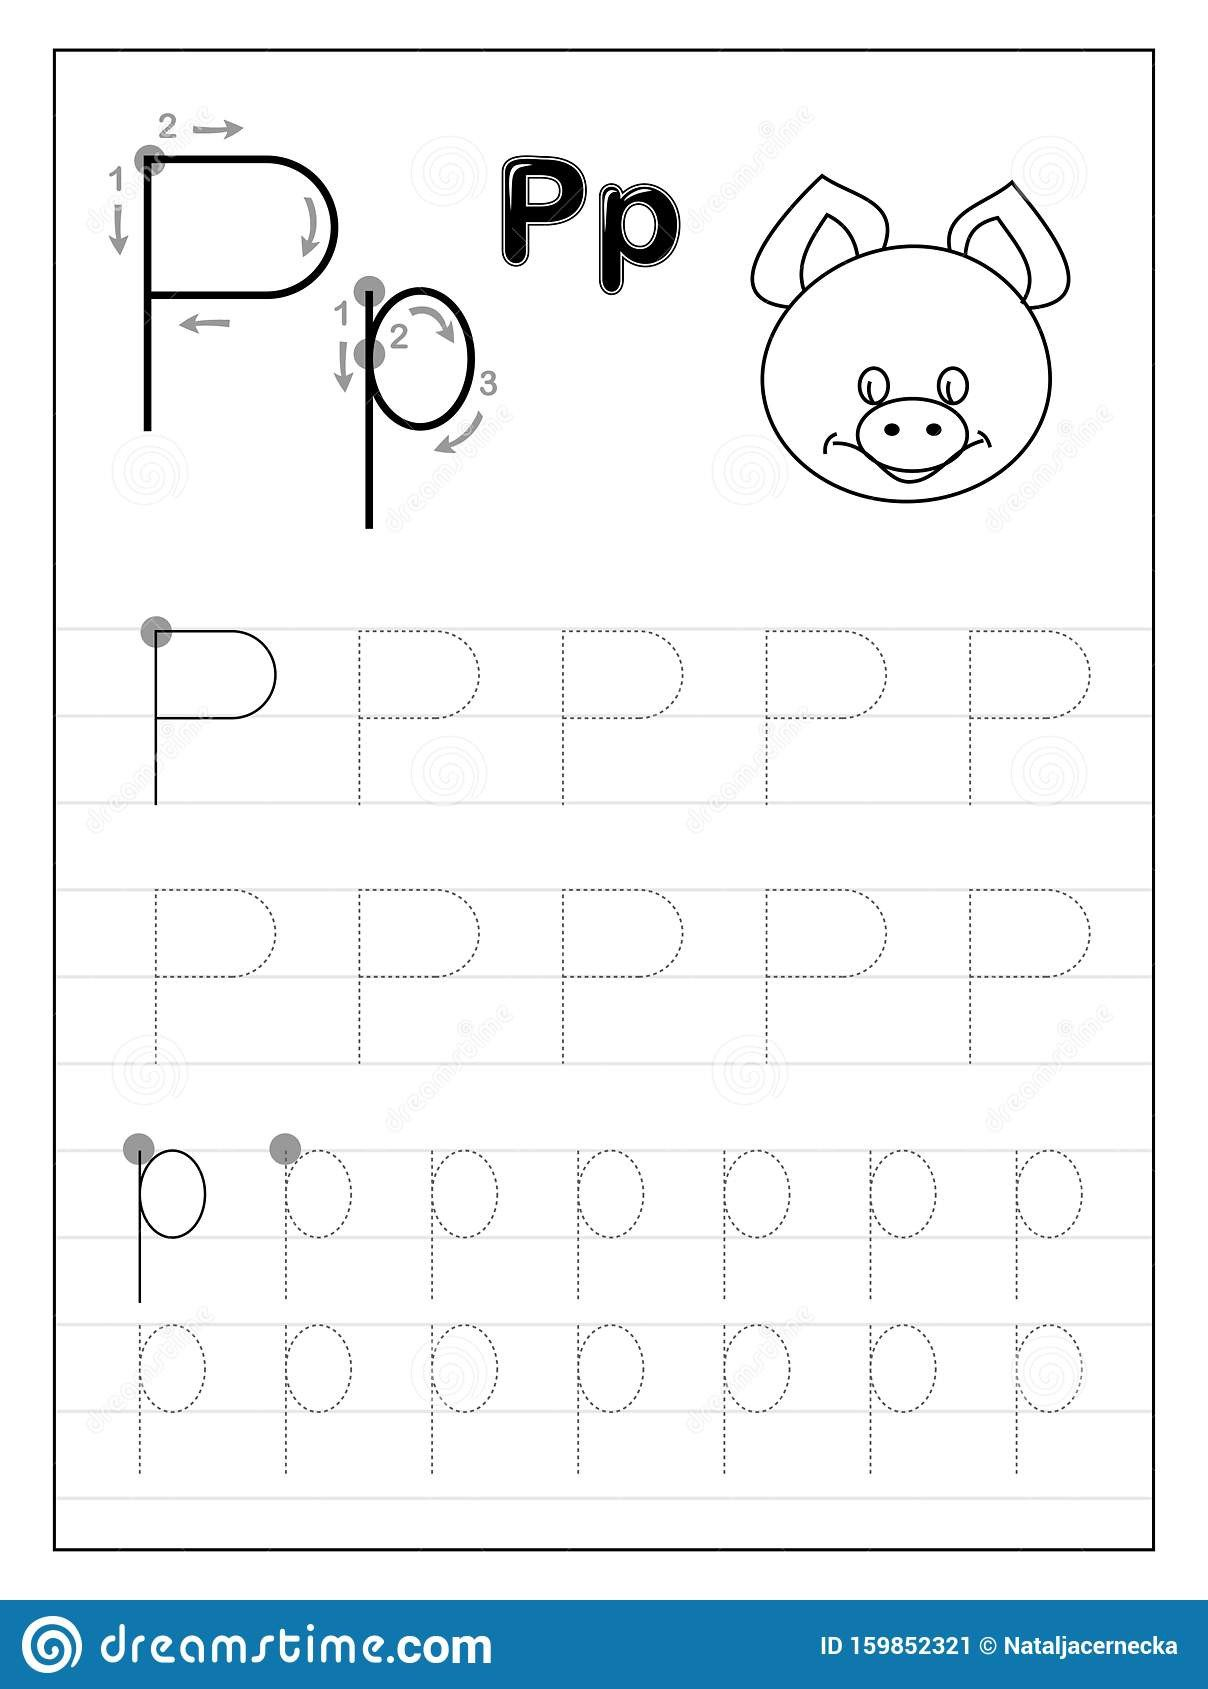 Letter P Preschool Worksheets Tracing Alphabet Letter P Black and White Educational Pages